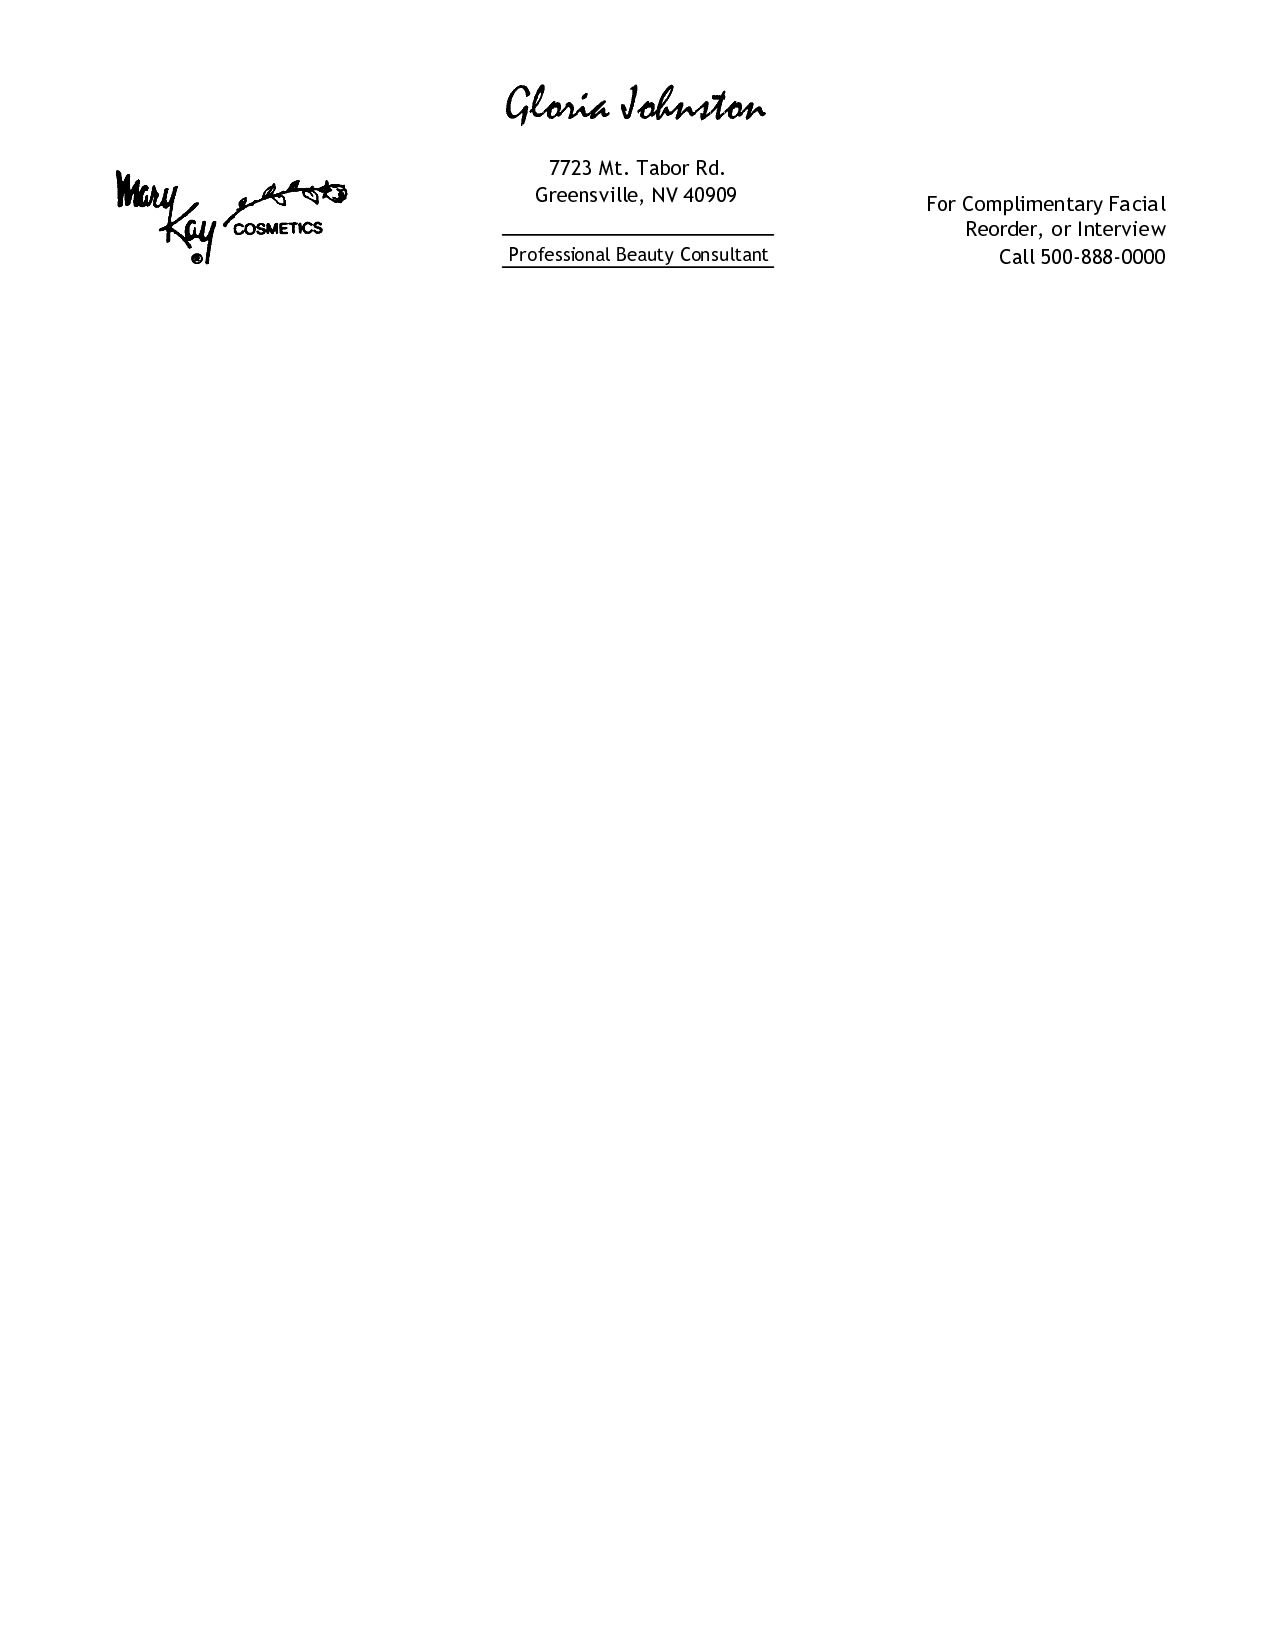 Free Printable Personal Letterhead Templates Free Throughout Word Stationery Letterhead Template Word Free Letterhead Template Word Free Letterhead Templates Personal letterhead templates free download